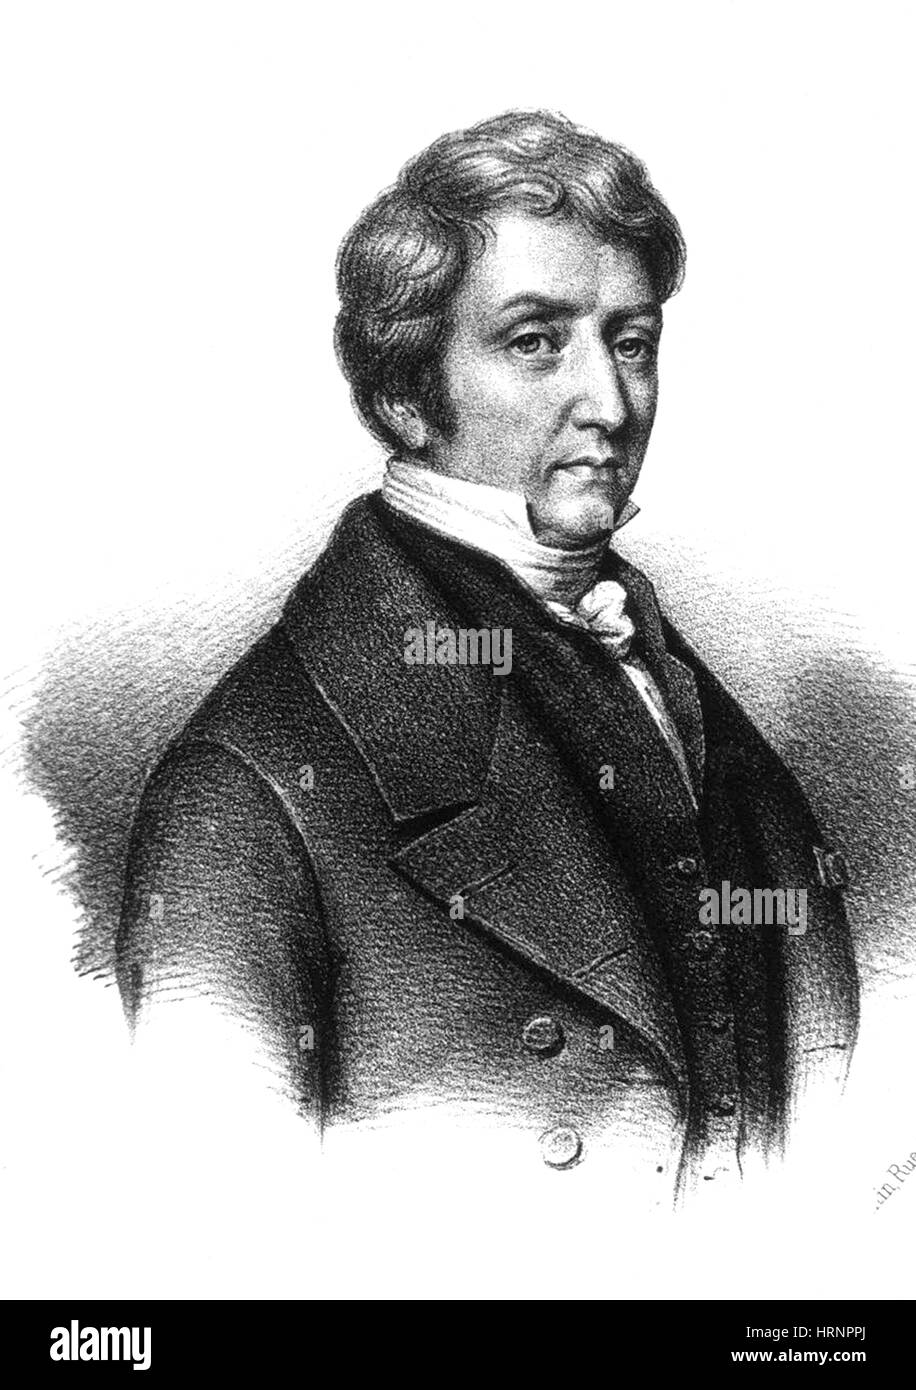 Pierre Louis Dulong, French Physicist and Chemist - Stock Image